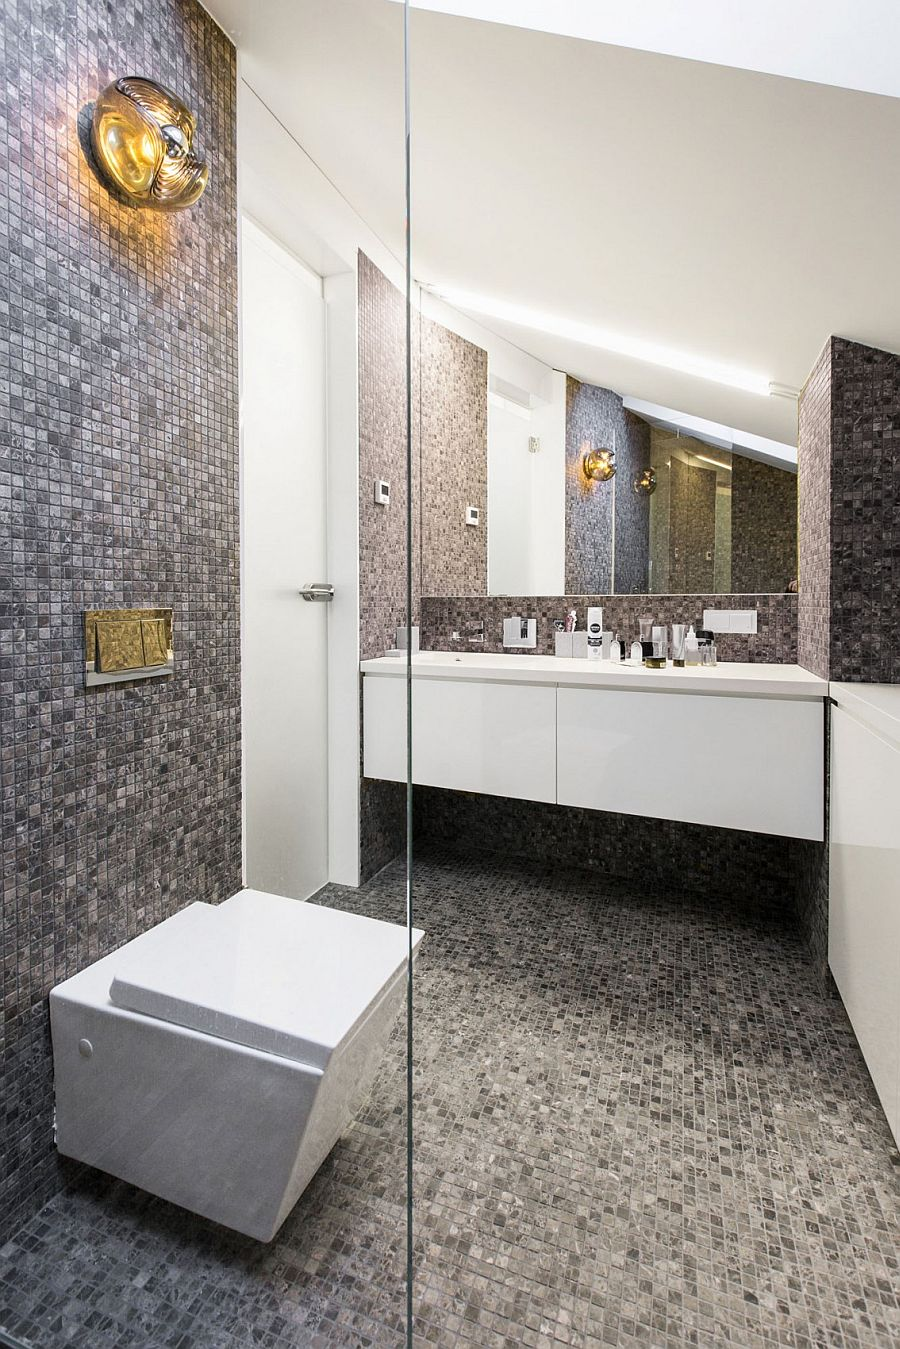 Small contemporary bathroom design with plenty of glam